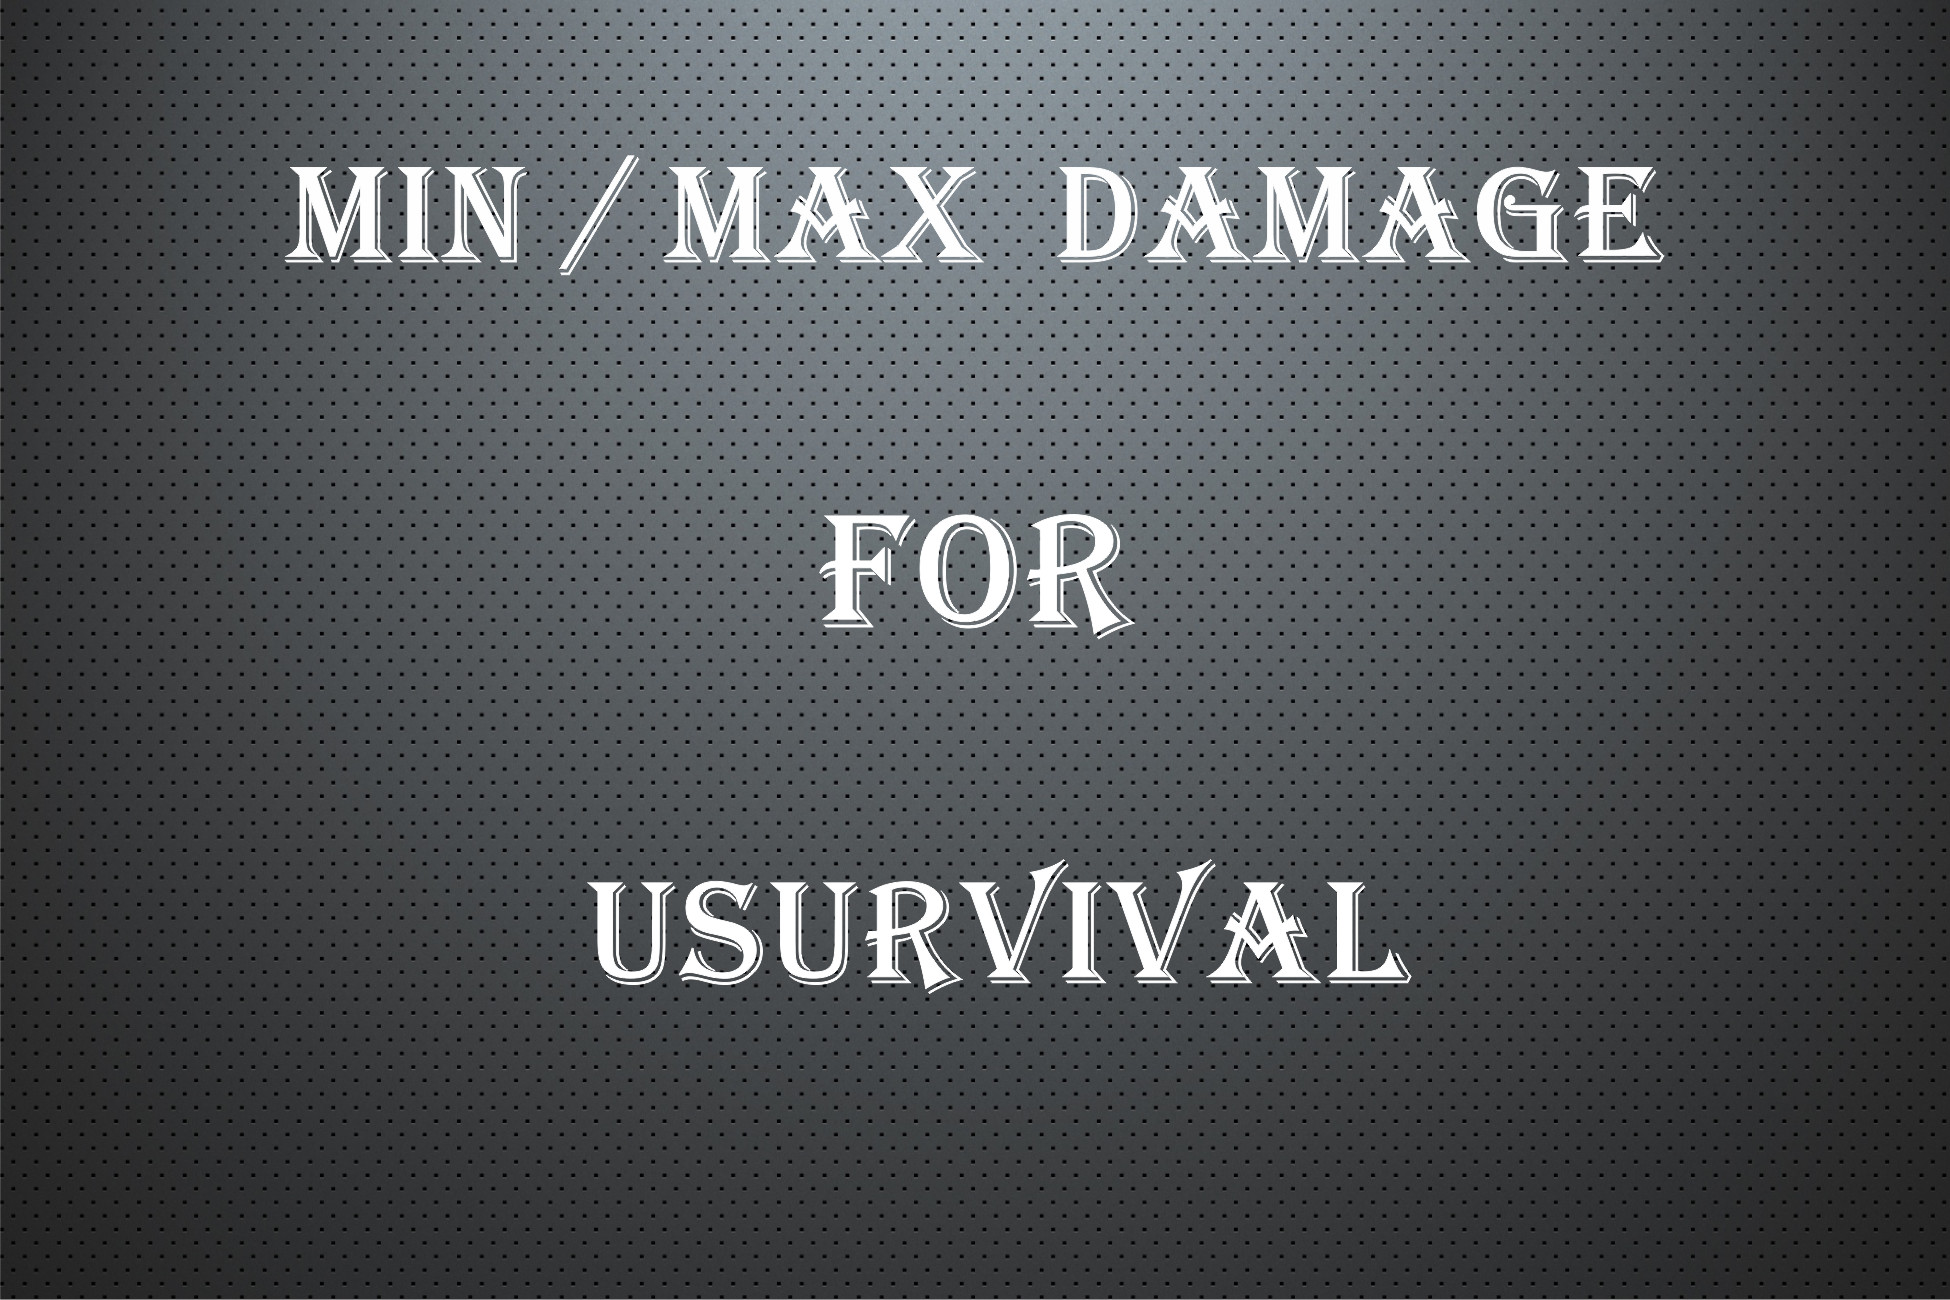 Min and Max Damage for uSurvival